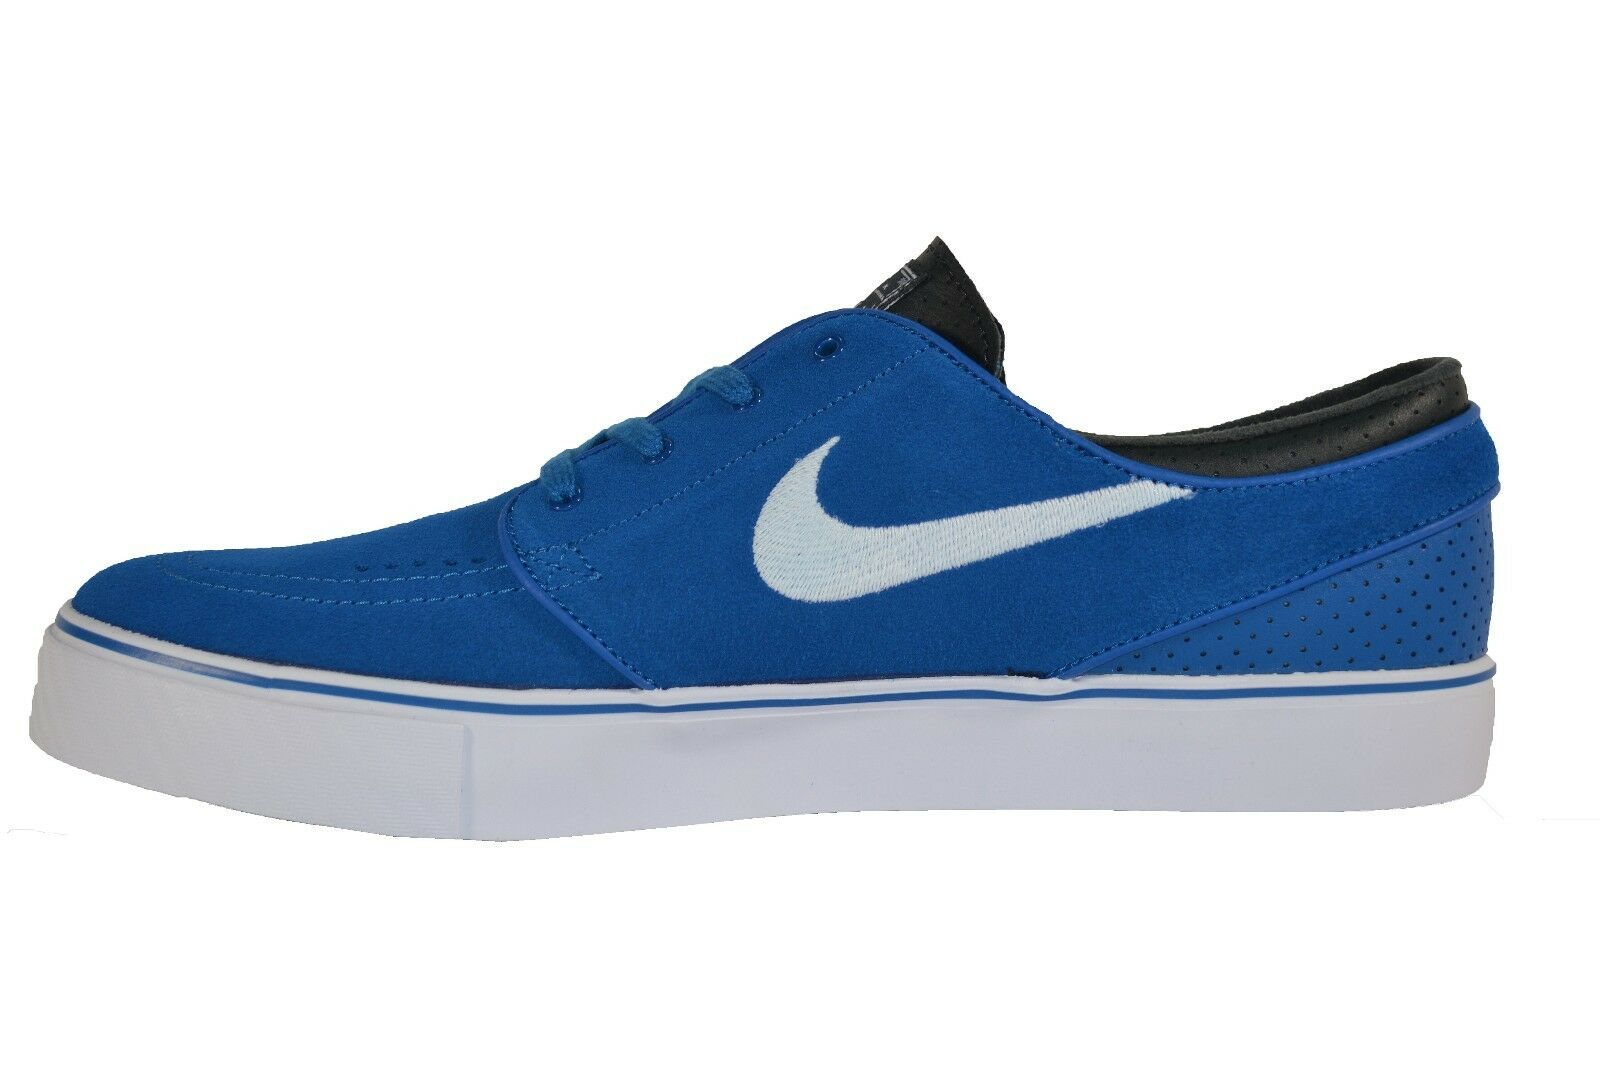 Nike ZOOM STEFAN JANOSKI Military Blue White Anthracite (405) Discounted Shoes